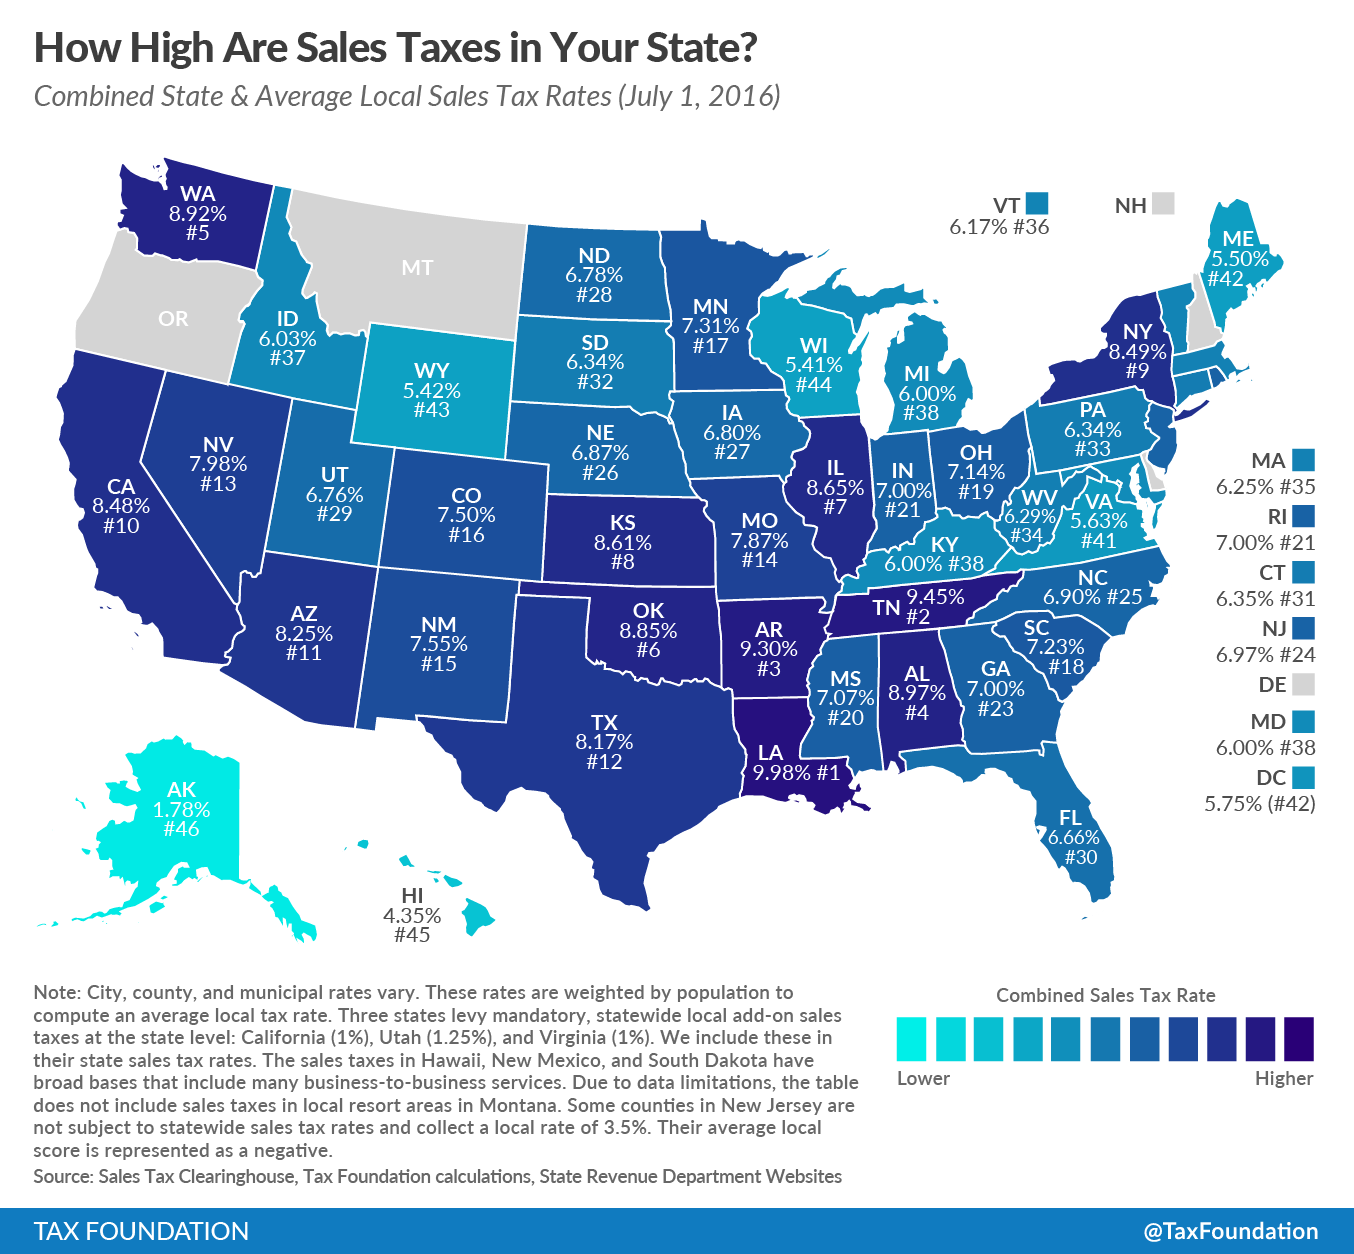 How High Are Sales Taxes In Your State?